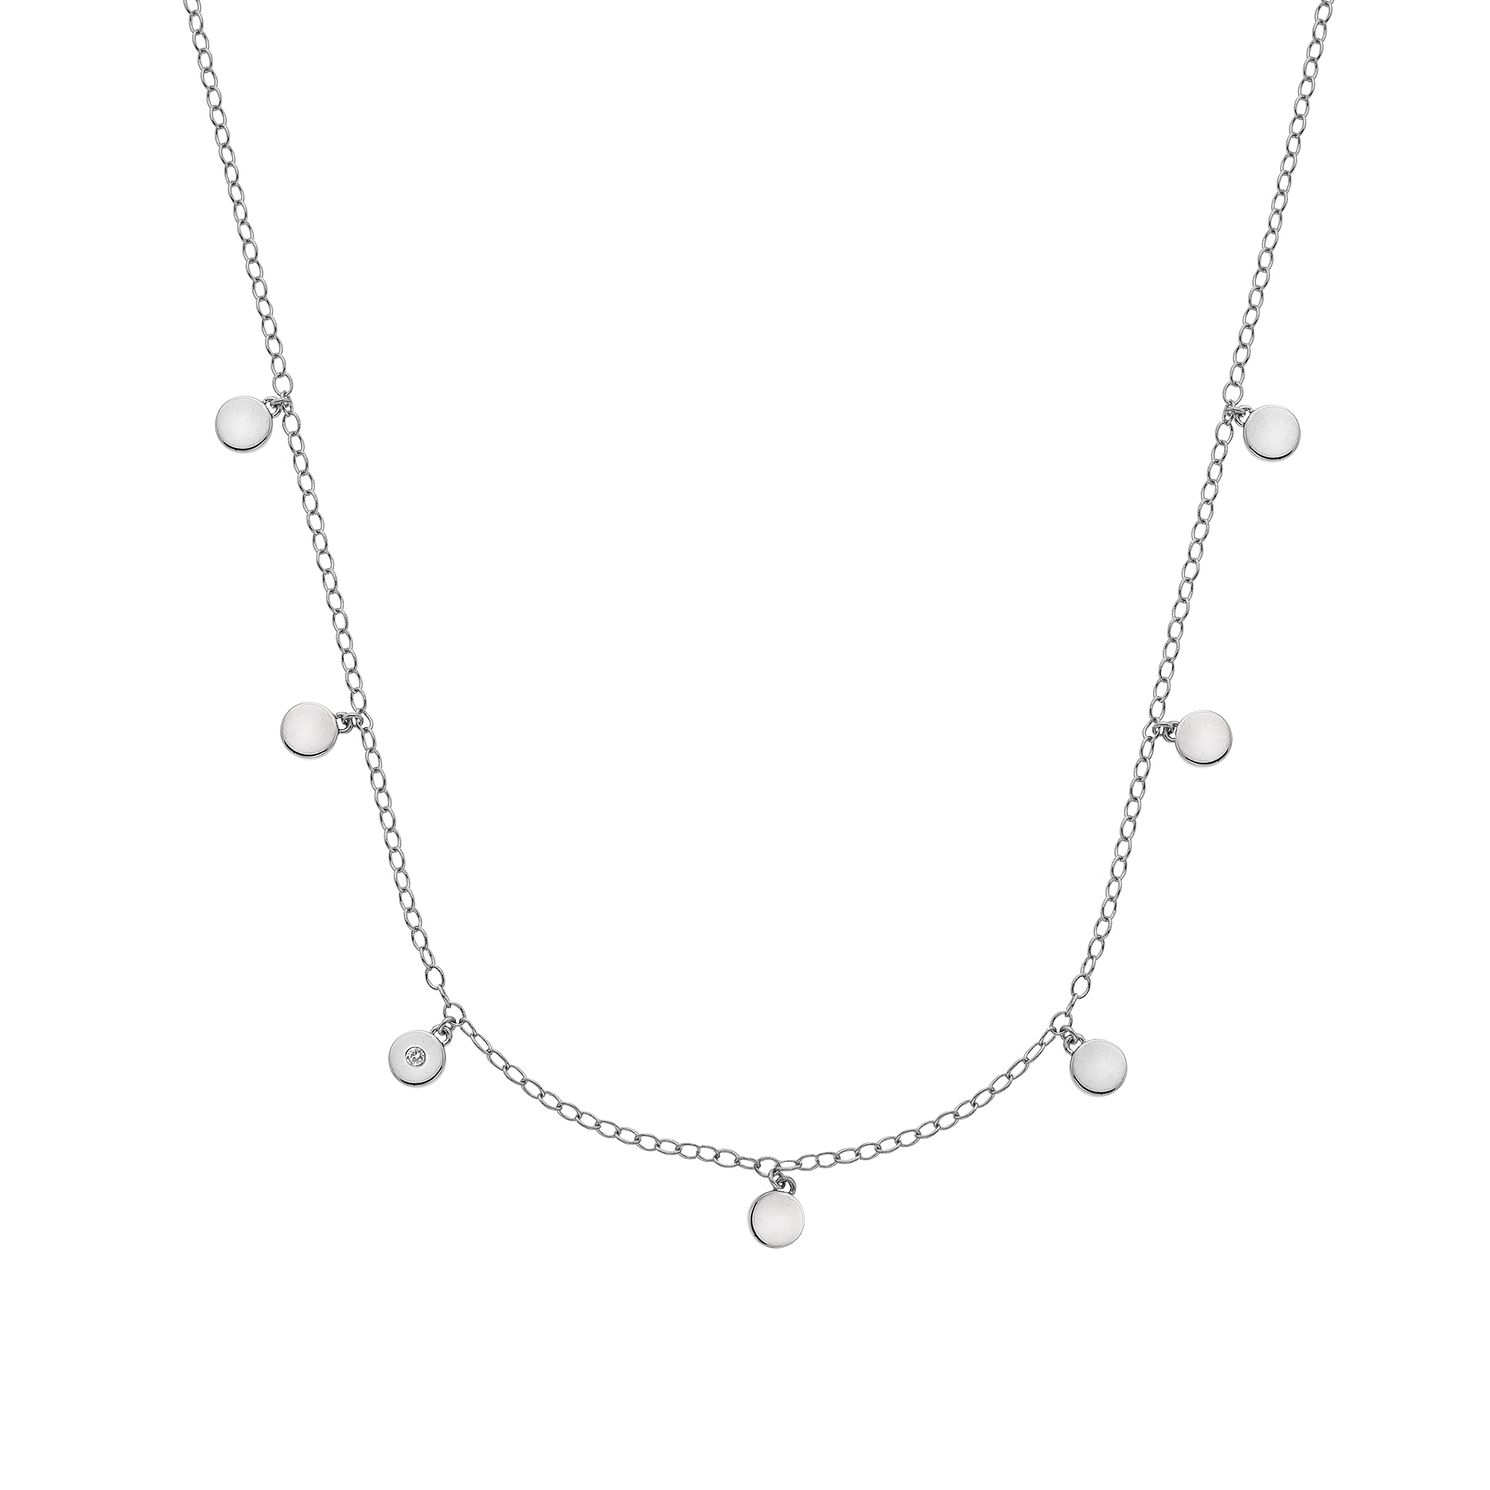 Hot Diamonds Sterling Silver Monsoon Necklace - Product number 5946905